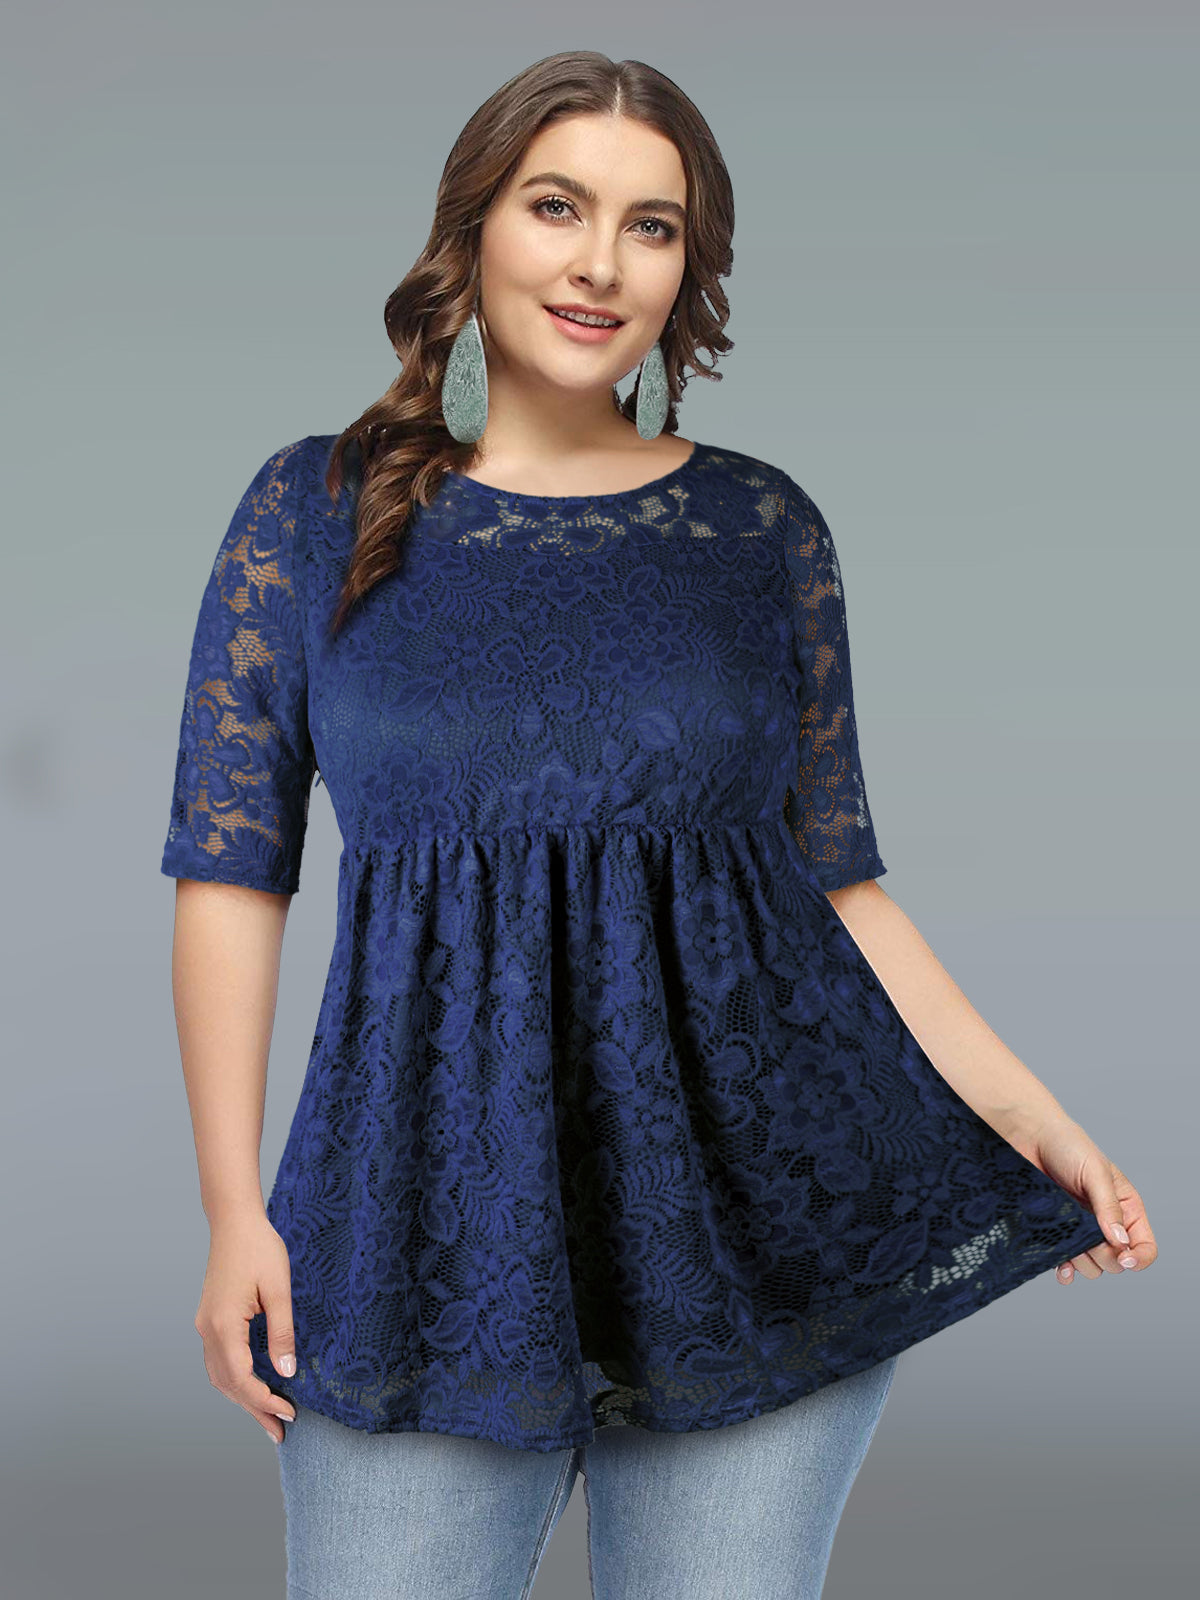 2dbce8a4b7586 Women s Plus Size Floral Lace Tops Casual Shirt. Size Charts